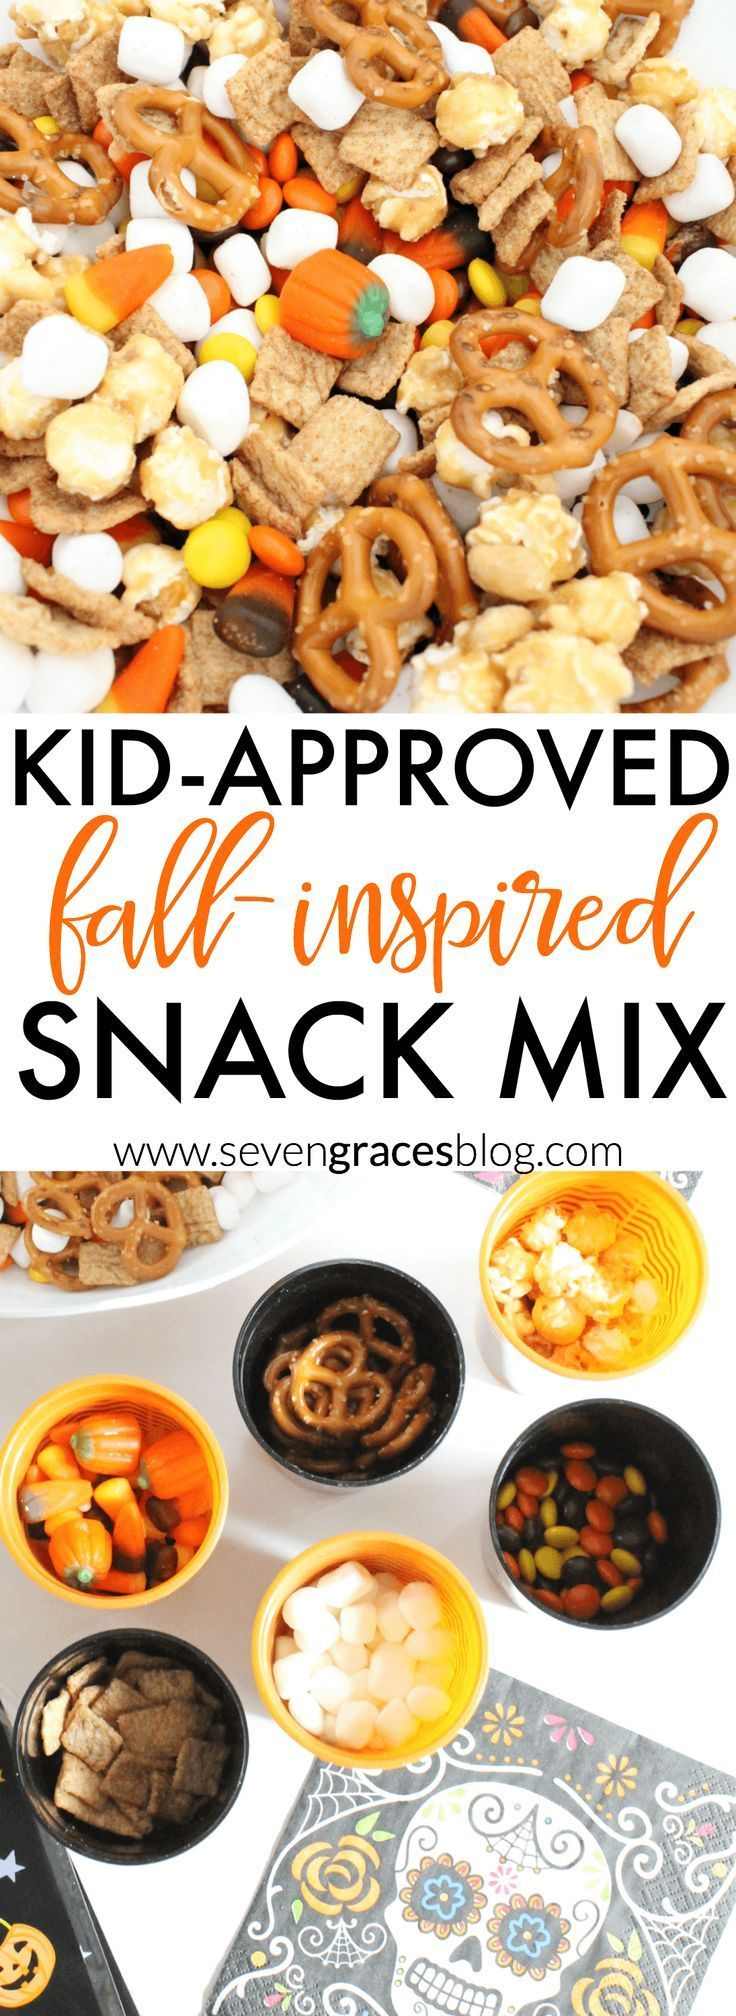 Celebrating Dia De Los Muertos: Kid-Approved, Fall-Inspired Snack Mix